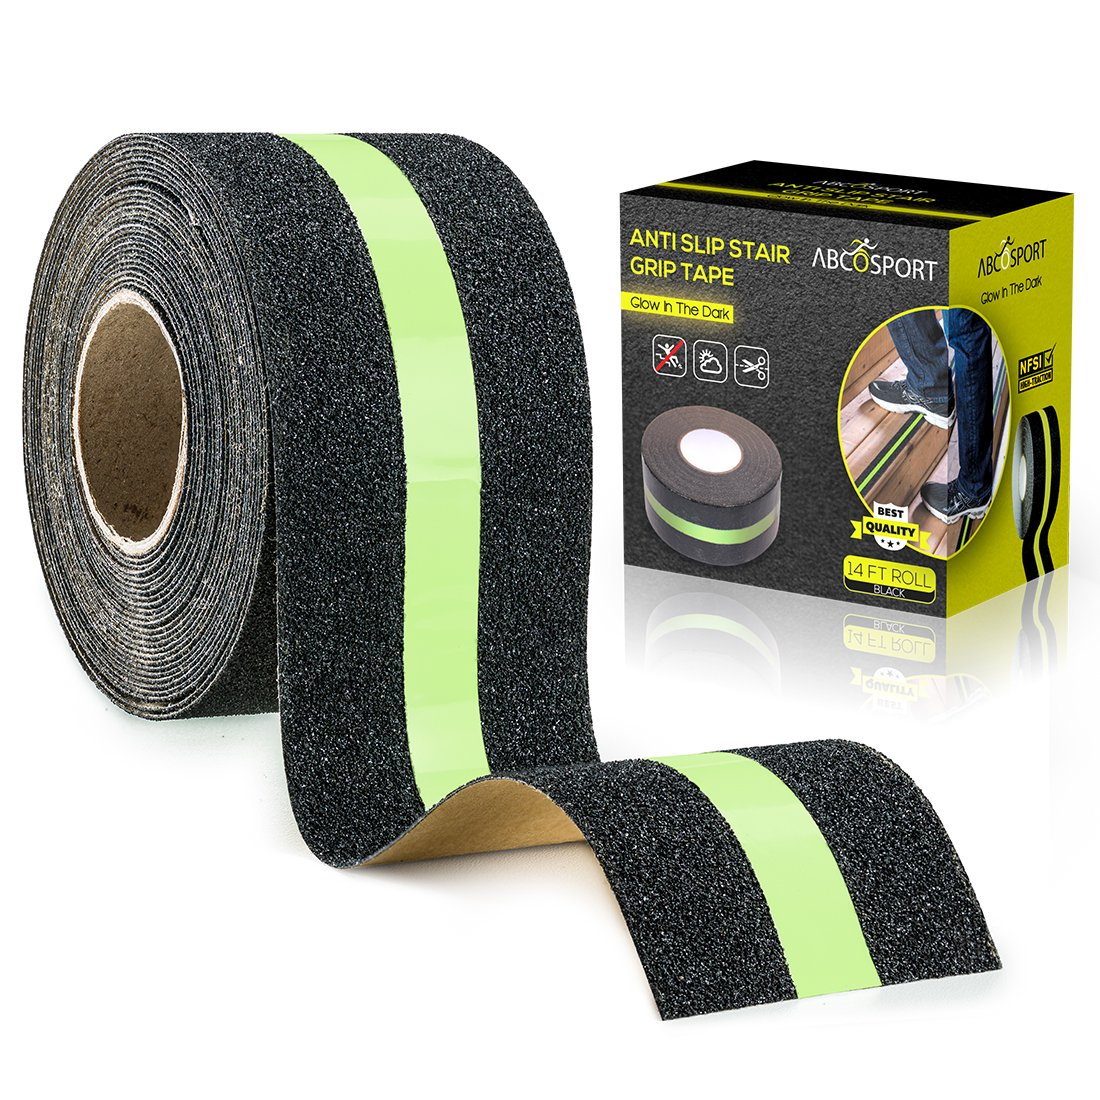 """Anti-Slip Grip Tape – Glow-in-Dark for Local Illumination - Improves Grip and Prevents Risk of Slippage on Stairs or Other Slippery Surfaces - 2"""" Wide and 14' Long Roll - Keeps You Safe!"""